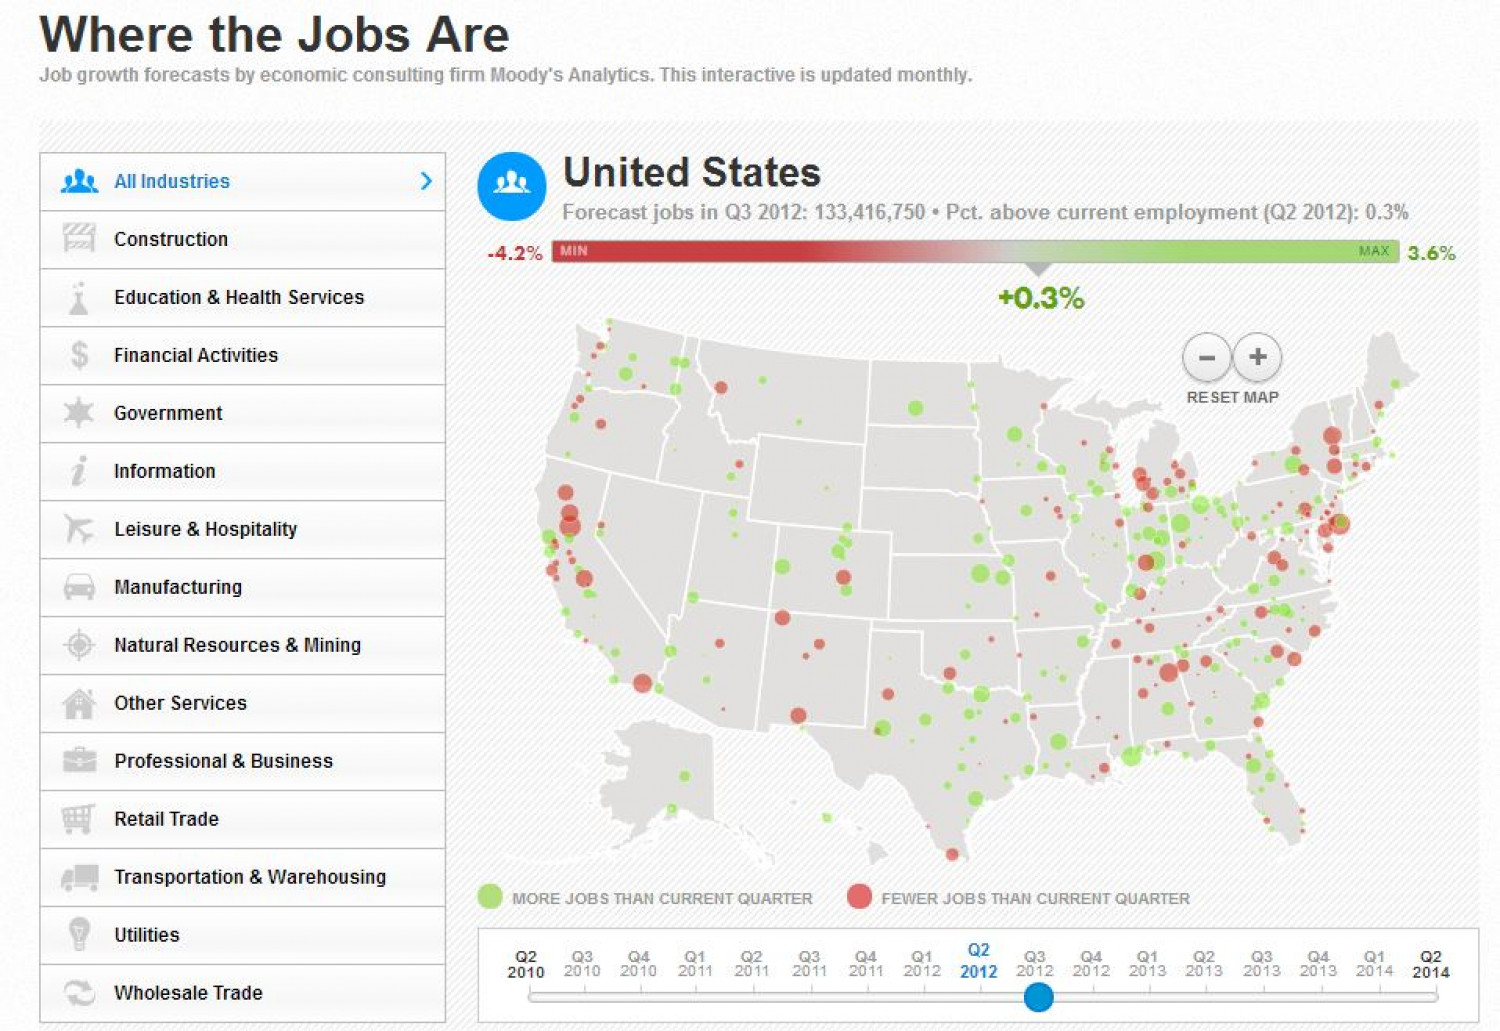 Where the Jobs Are in the U.S  Infographic